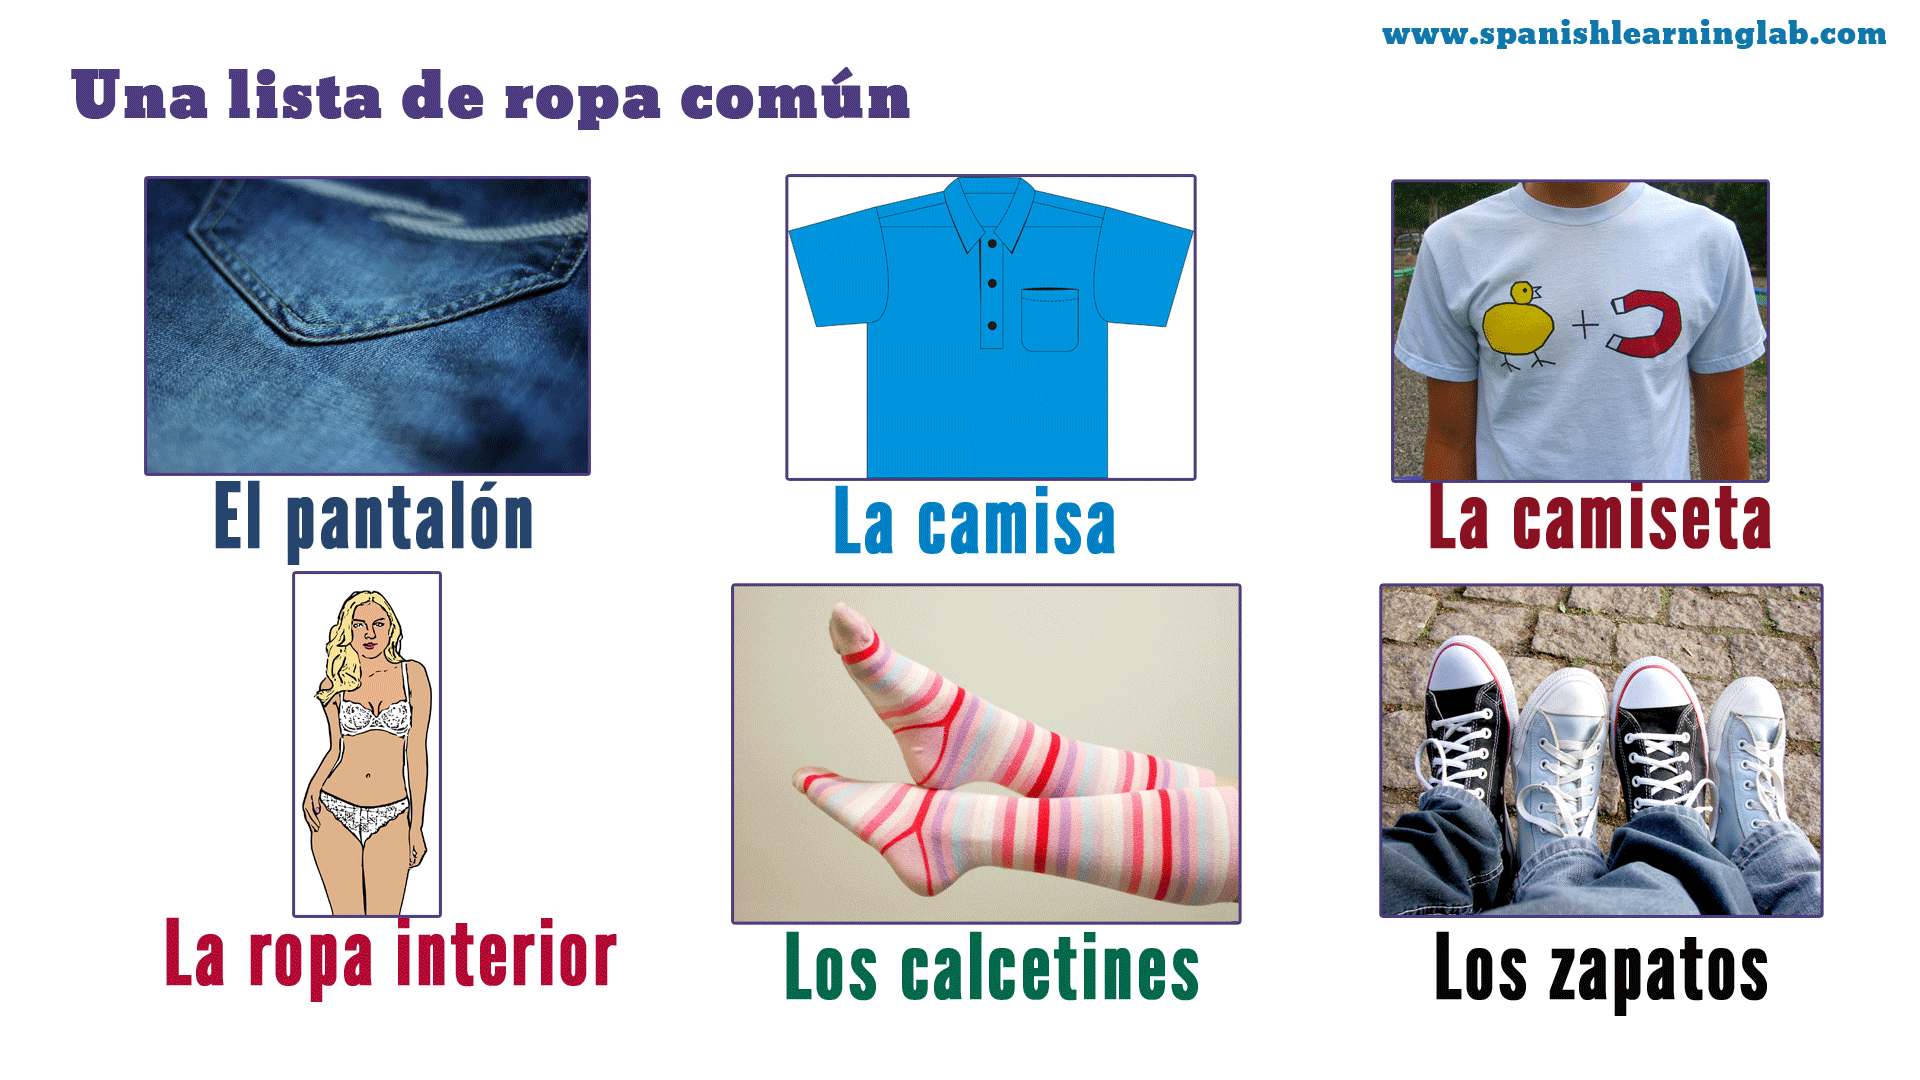 A List Of Six Clothing Items In Spanish Including El